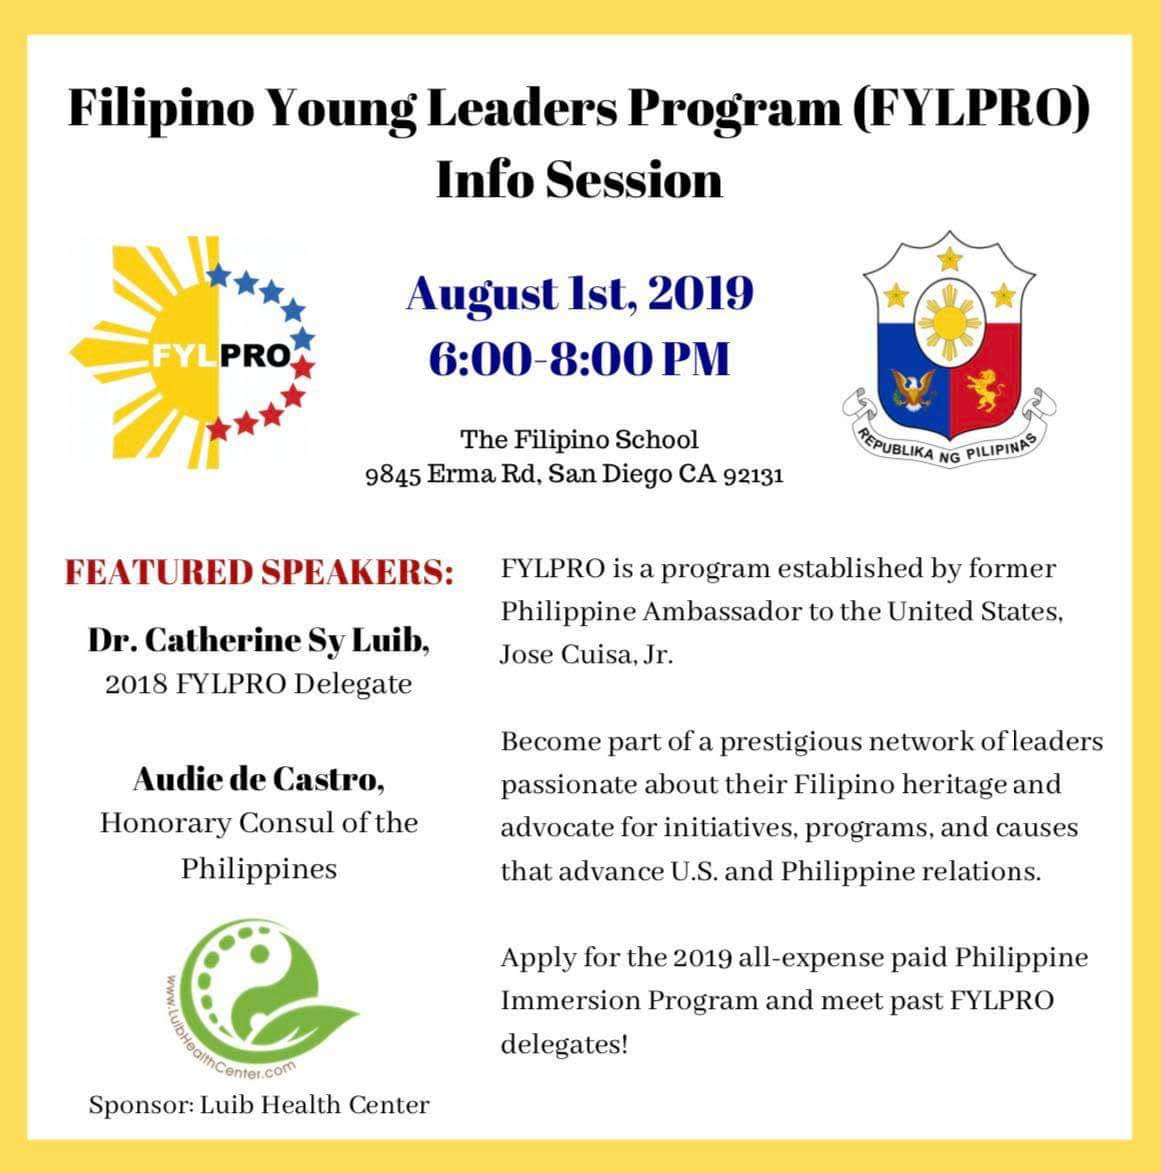 San Diego FYLPRO Info Session – FYLPRO